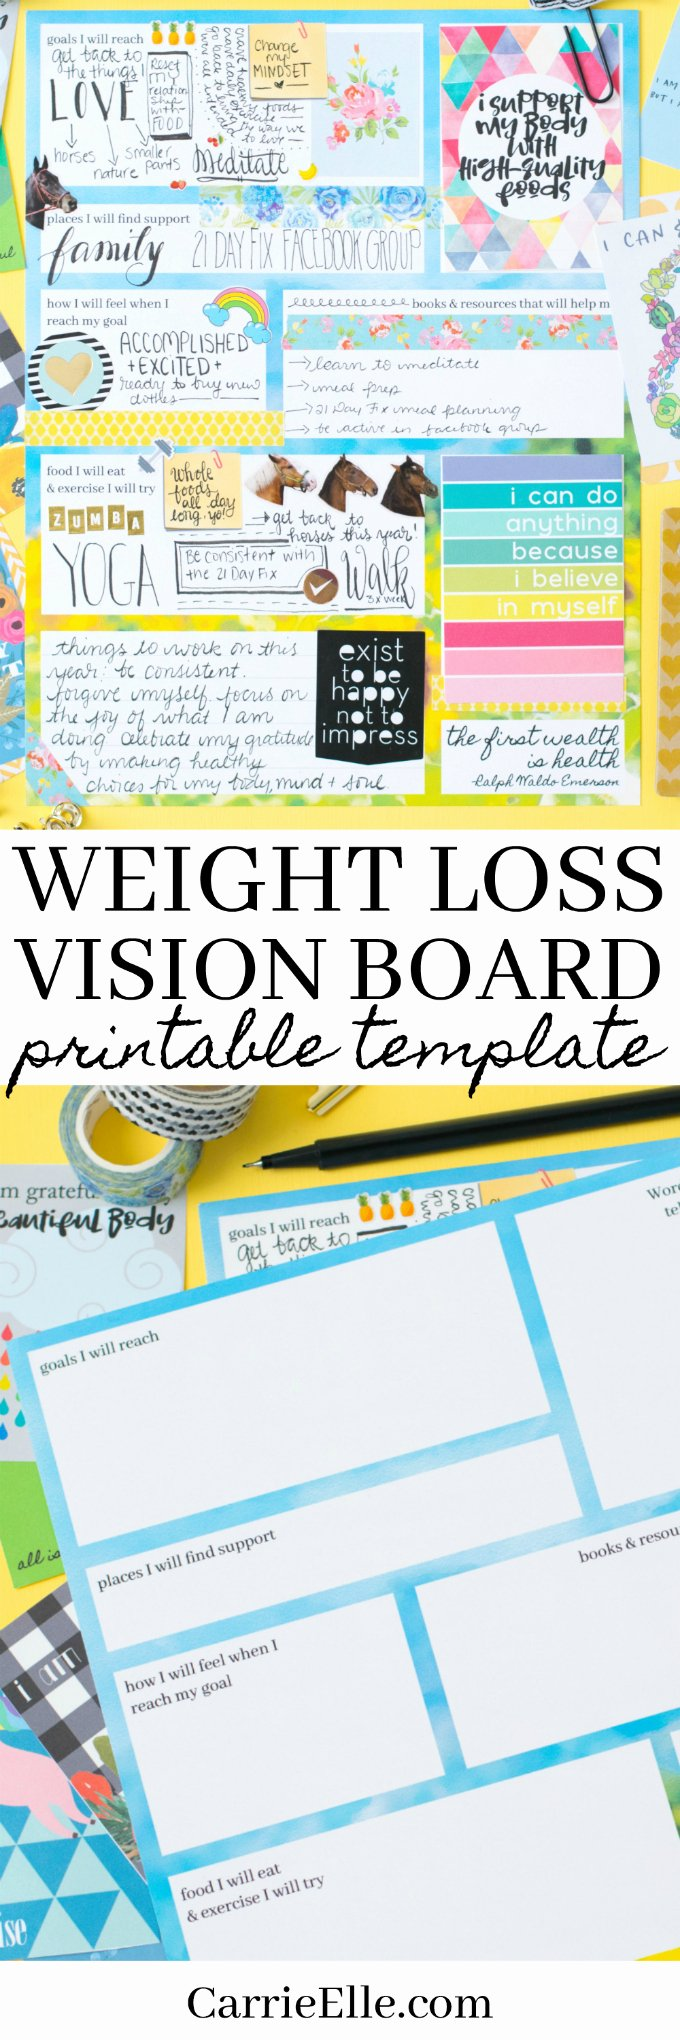 Printable Vision Board Template Fresh Printable Weight Loss Vision Board Template Carrie Elle